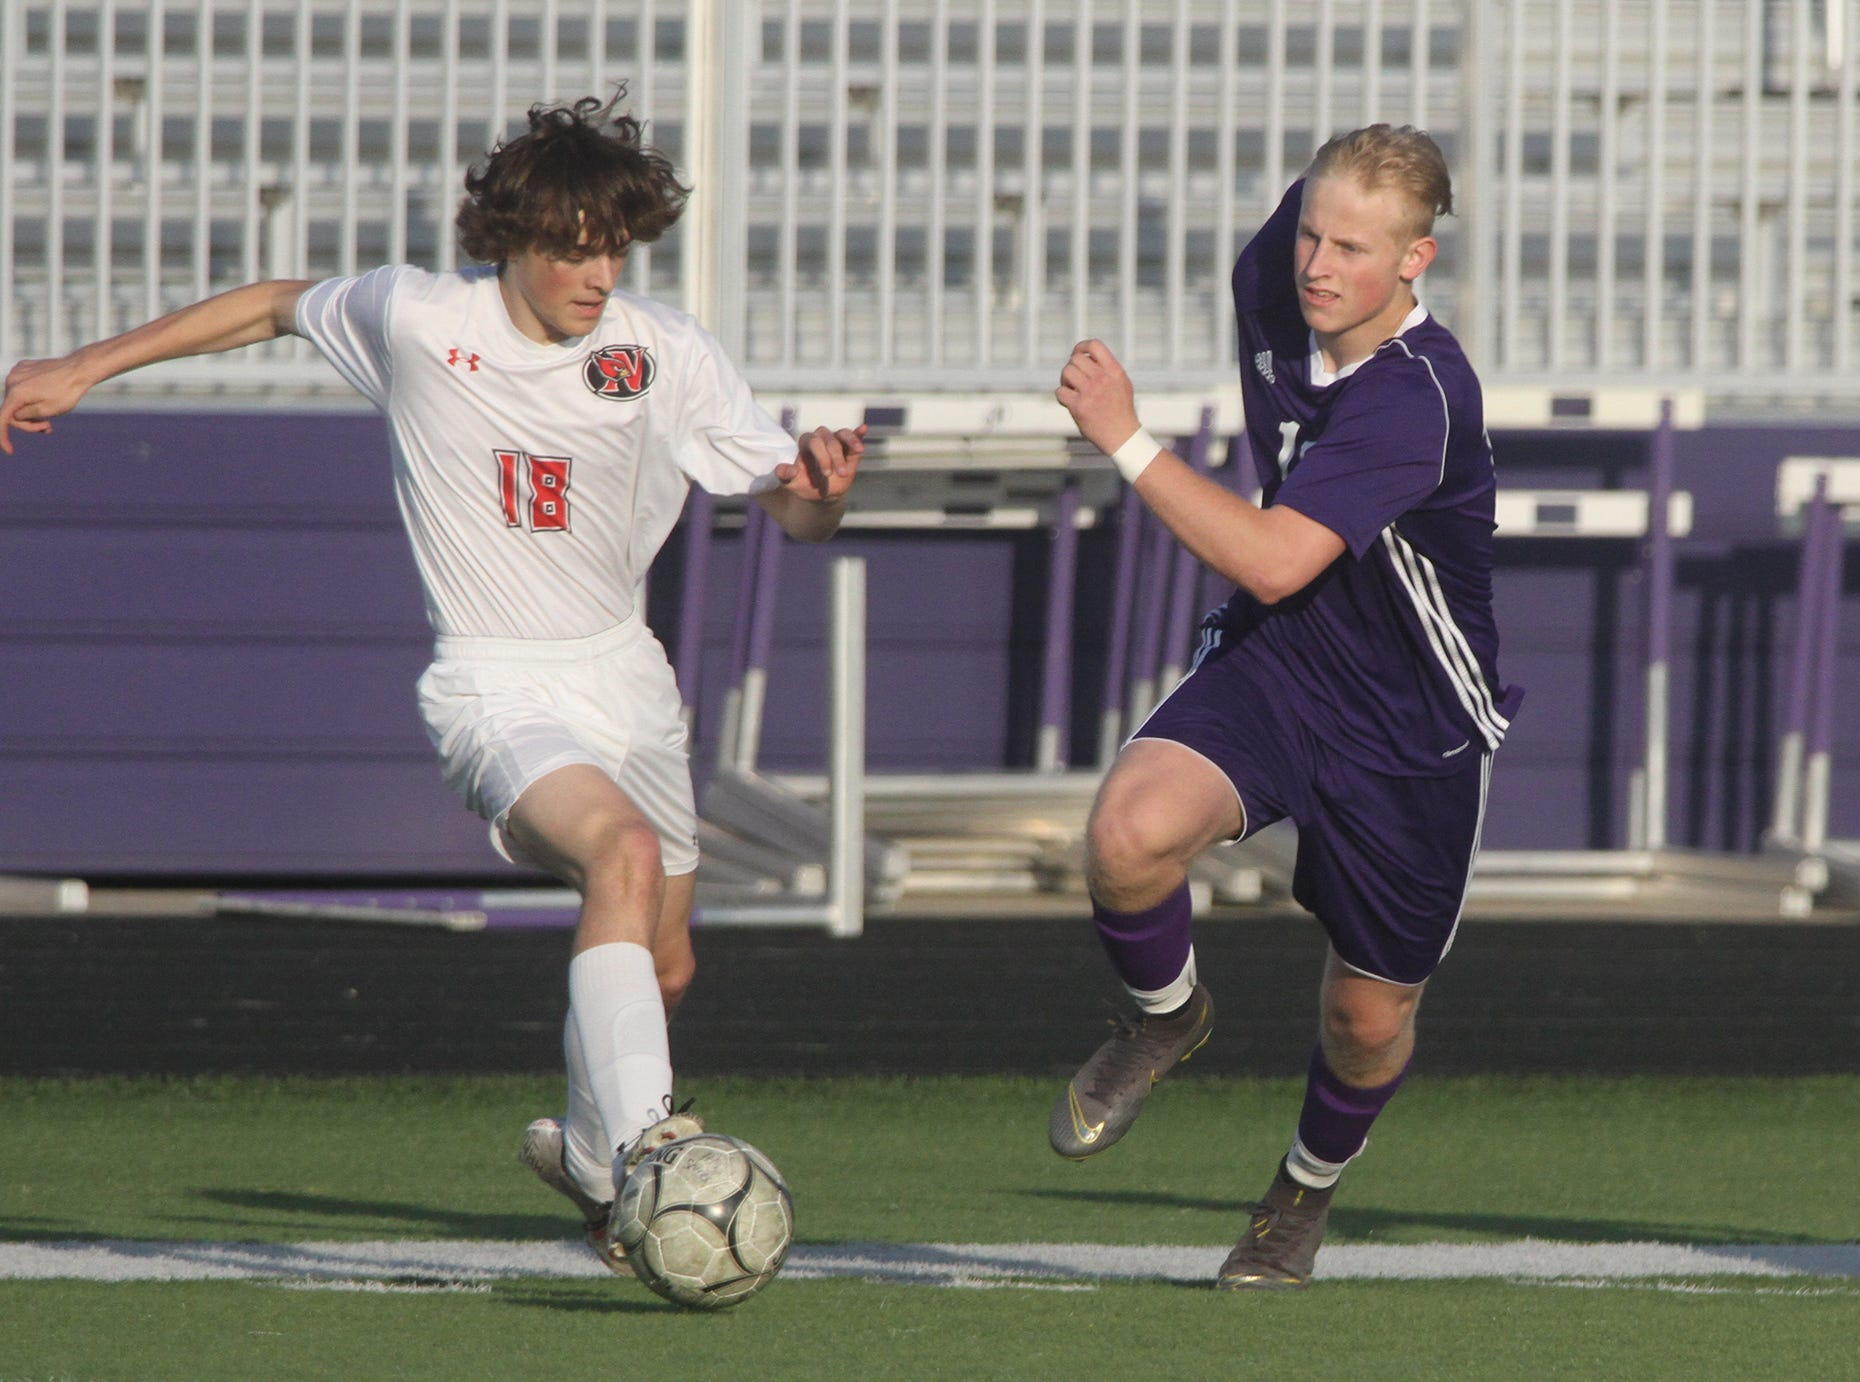 Newton sophomore Jack Suttek tries to get to the ball before being cut off by Indianola junior Peyton Boozell. Indianola beat Newton 2-0 at home in a Little Hawkeye Conference game.